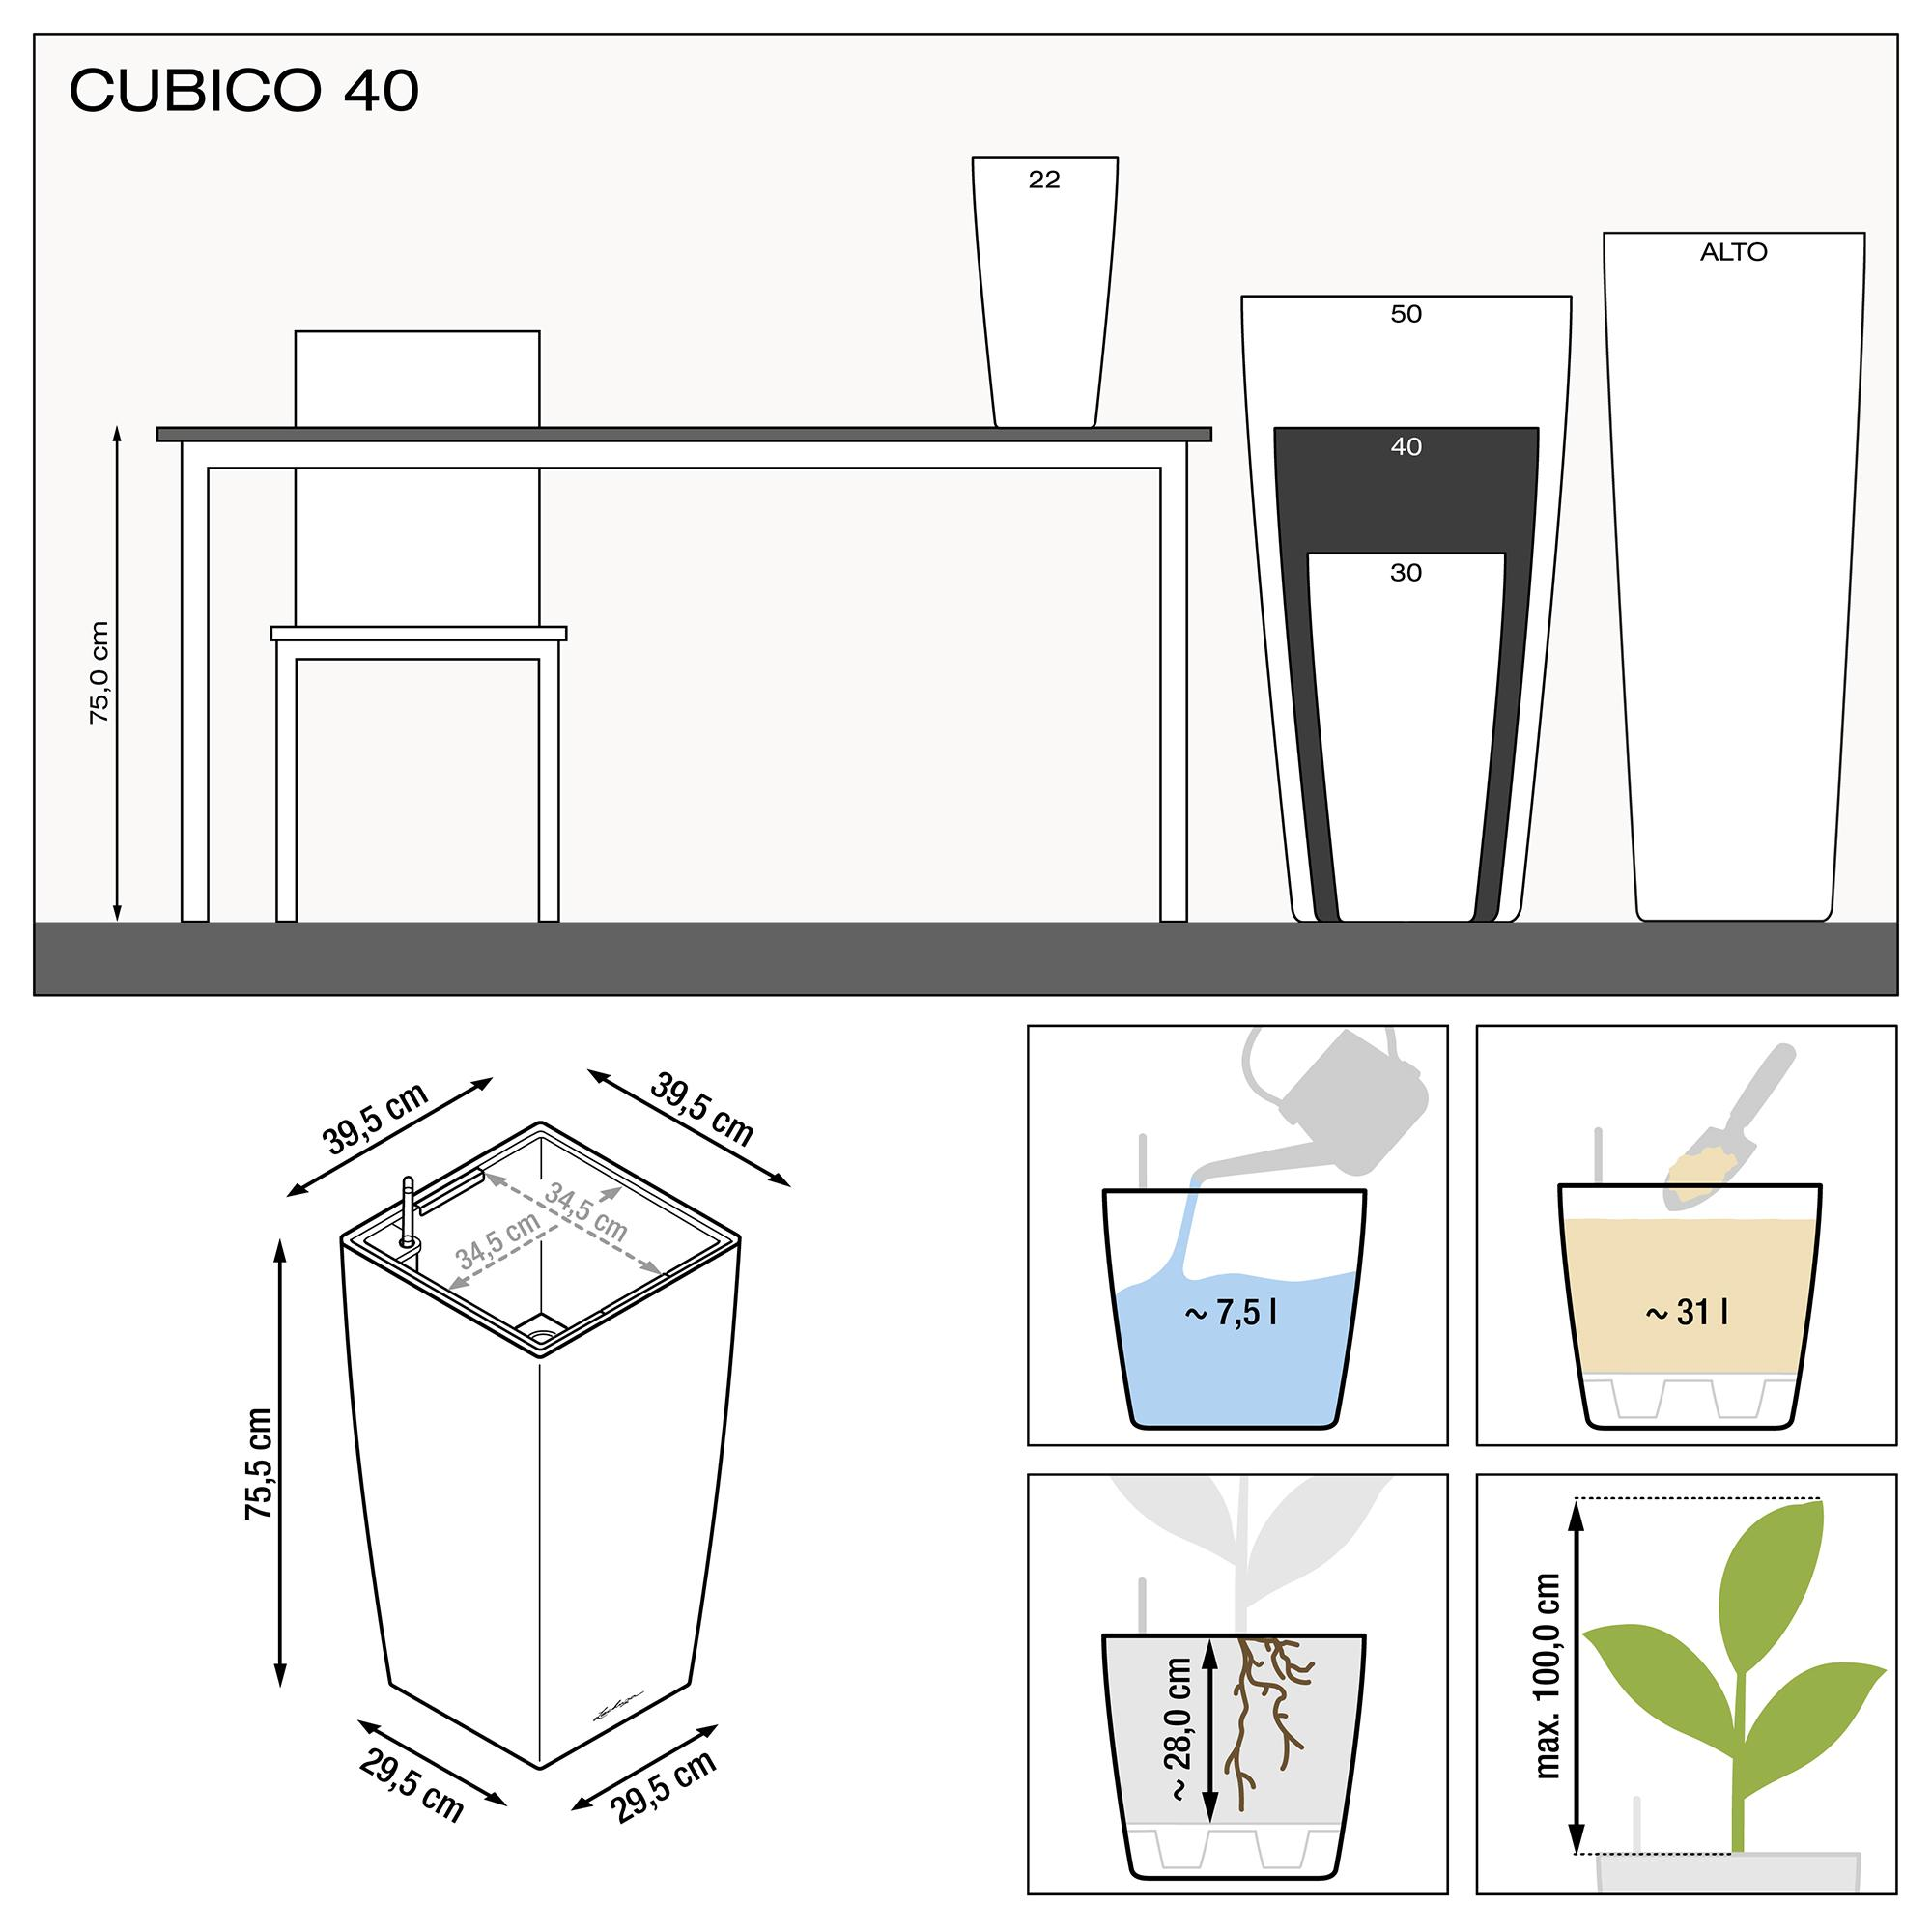 le_cubico40_product_addi_nz